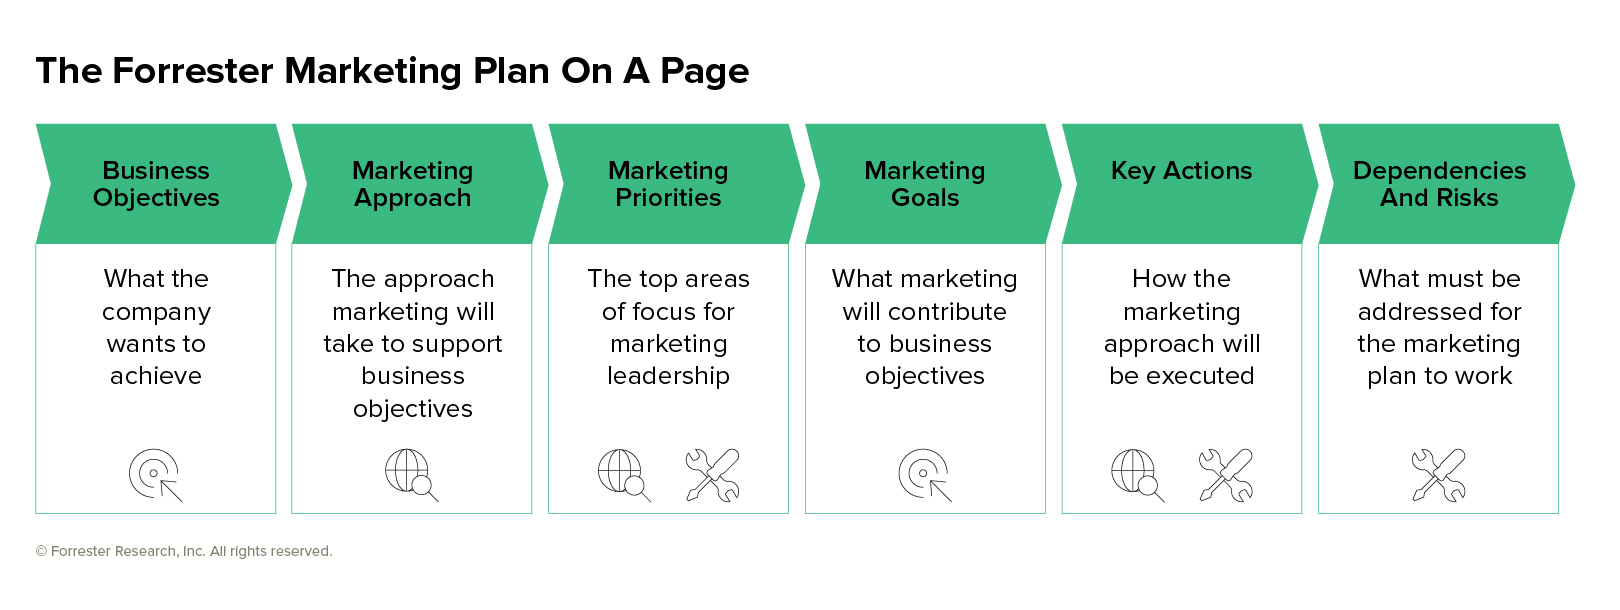 Forrester Marketing Plan On A Page